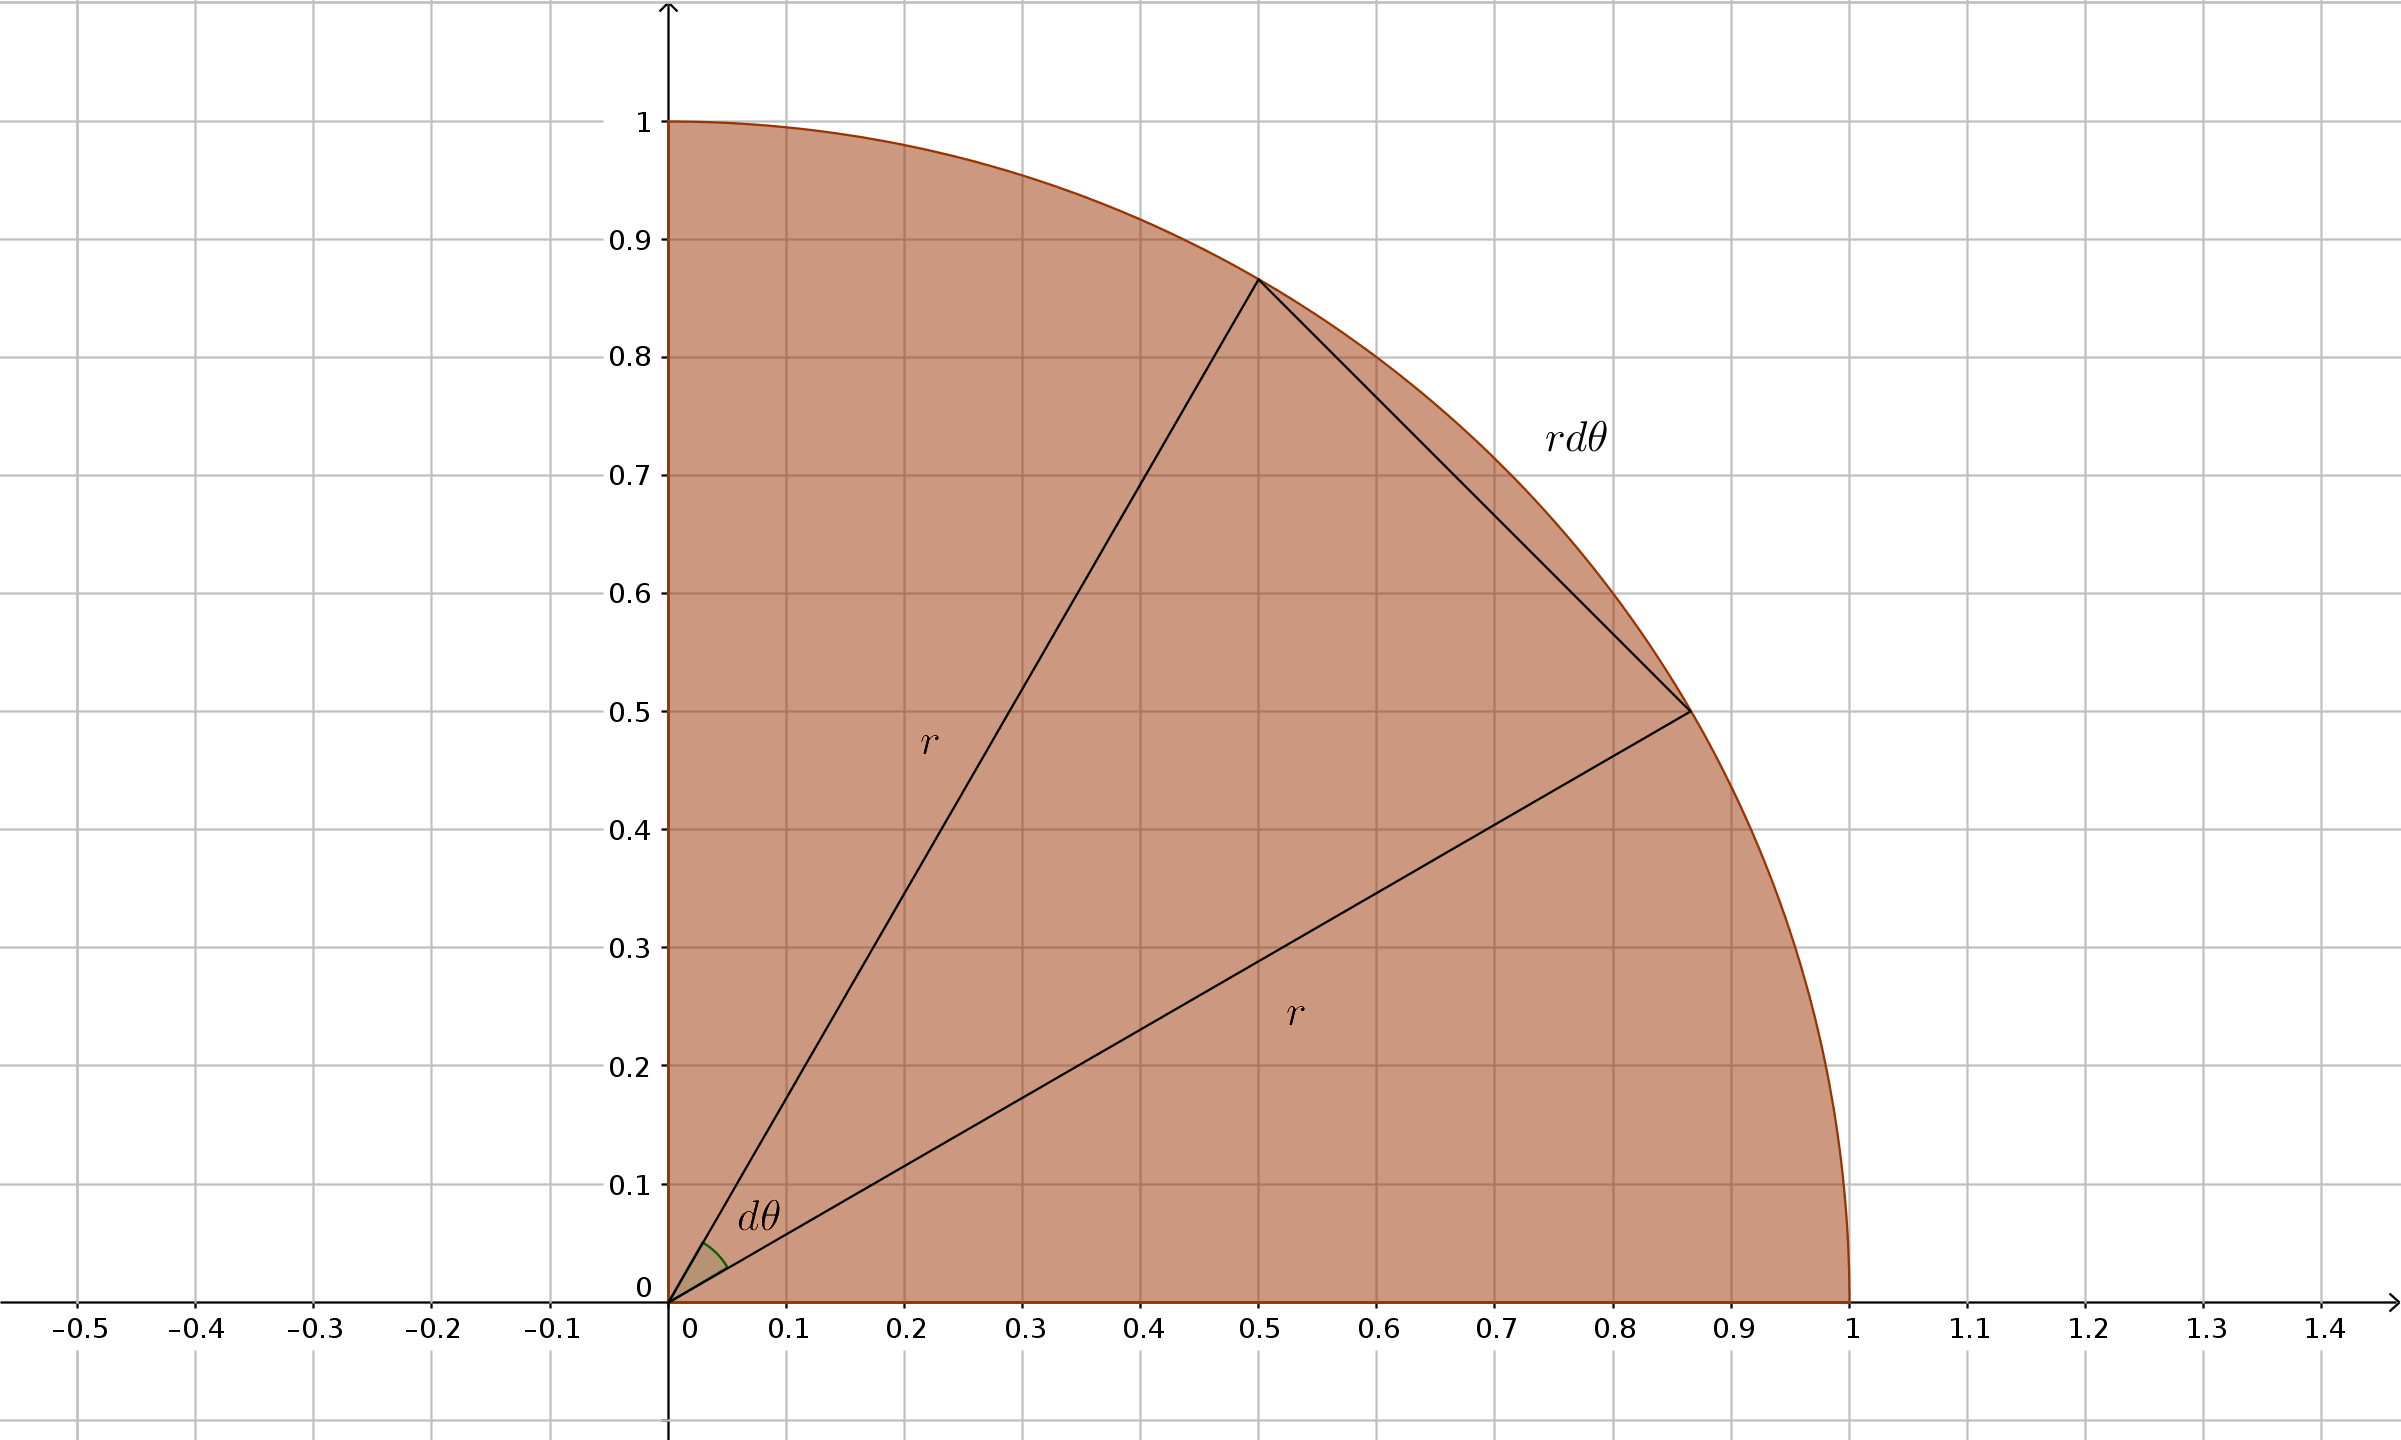 Area Under Quarter Circle By Integration